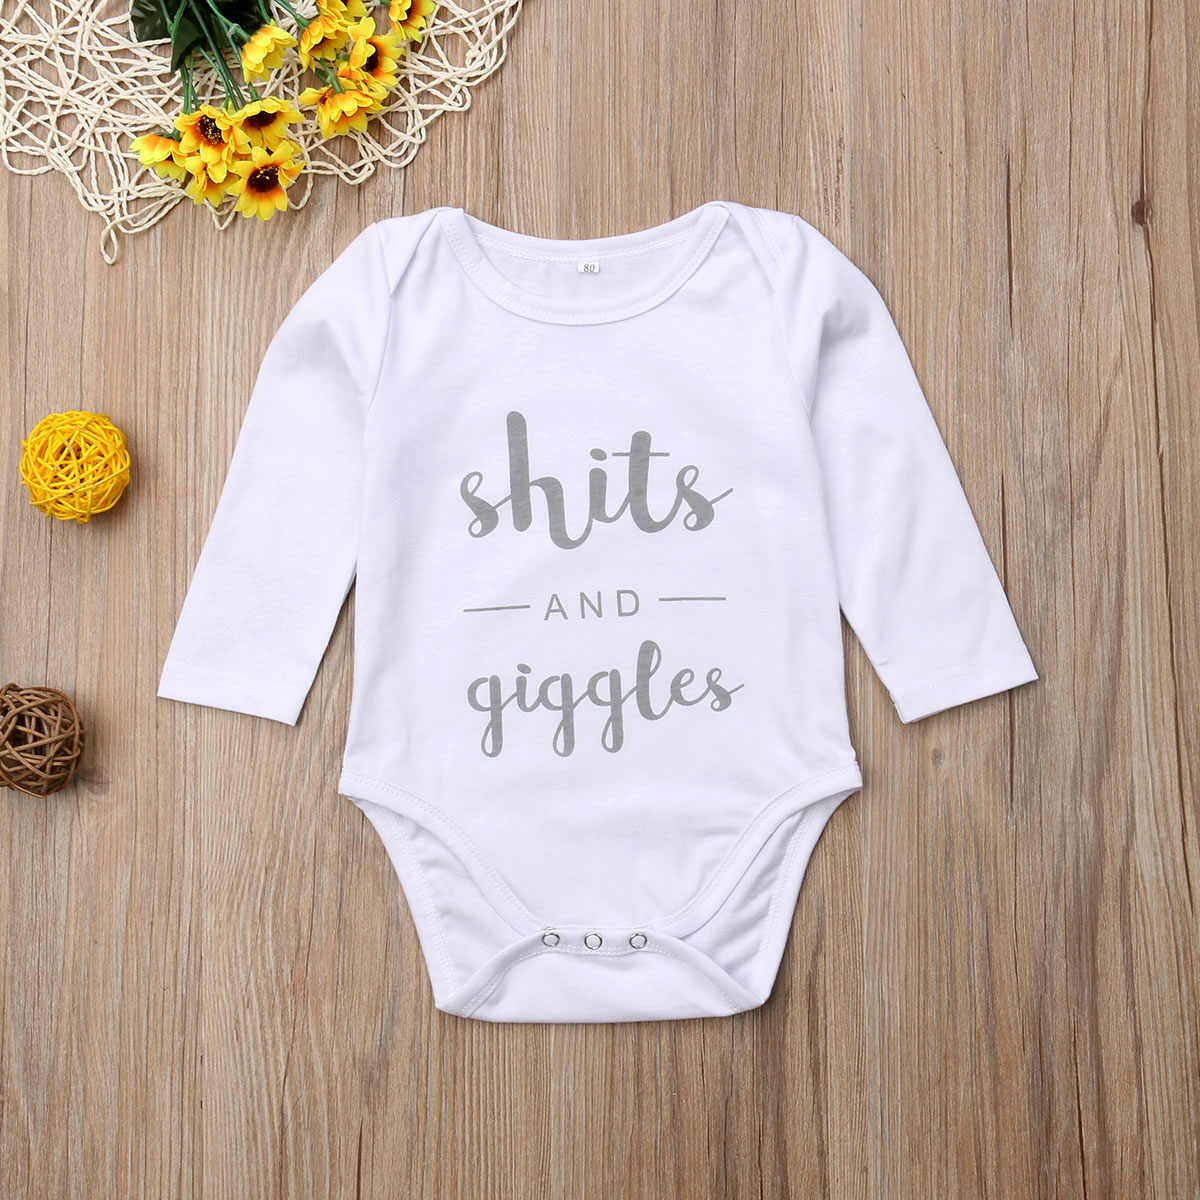 2018 Brand New Newborn Infant Baby Girls Boys Casual Autumn Bodysuits Letter Print Long Sleeve White Cotton Jumpsuits Playsuit